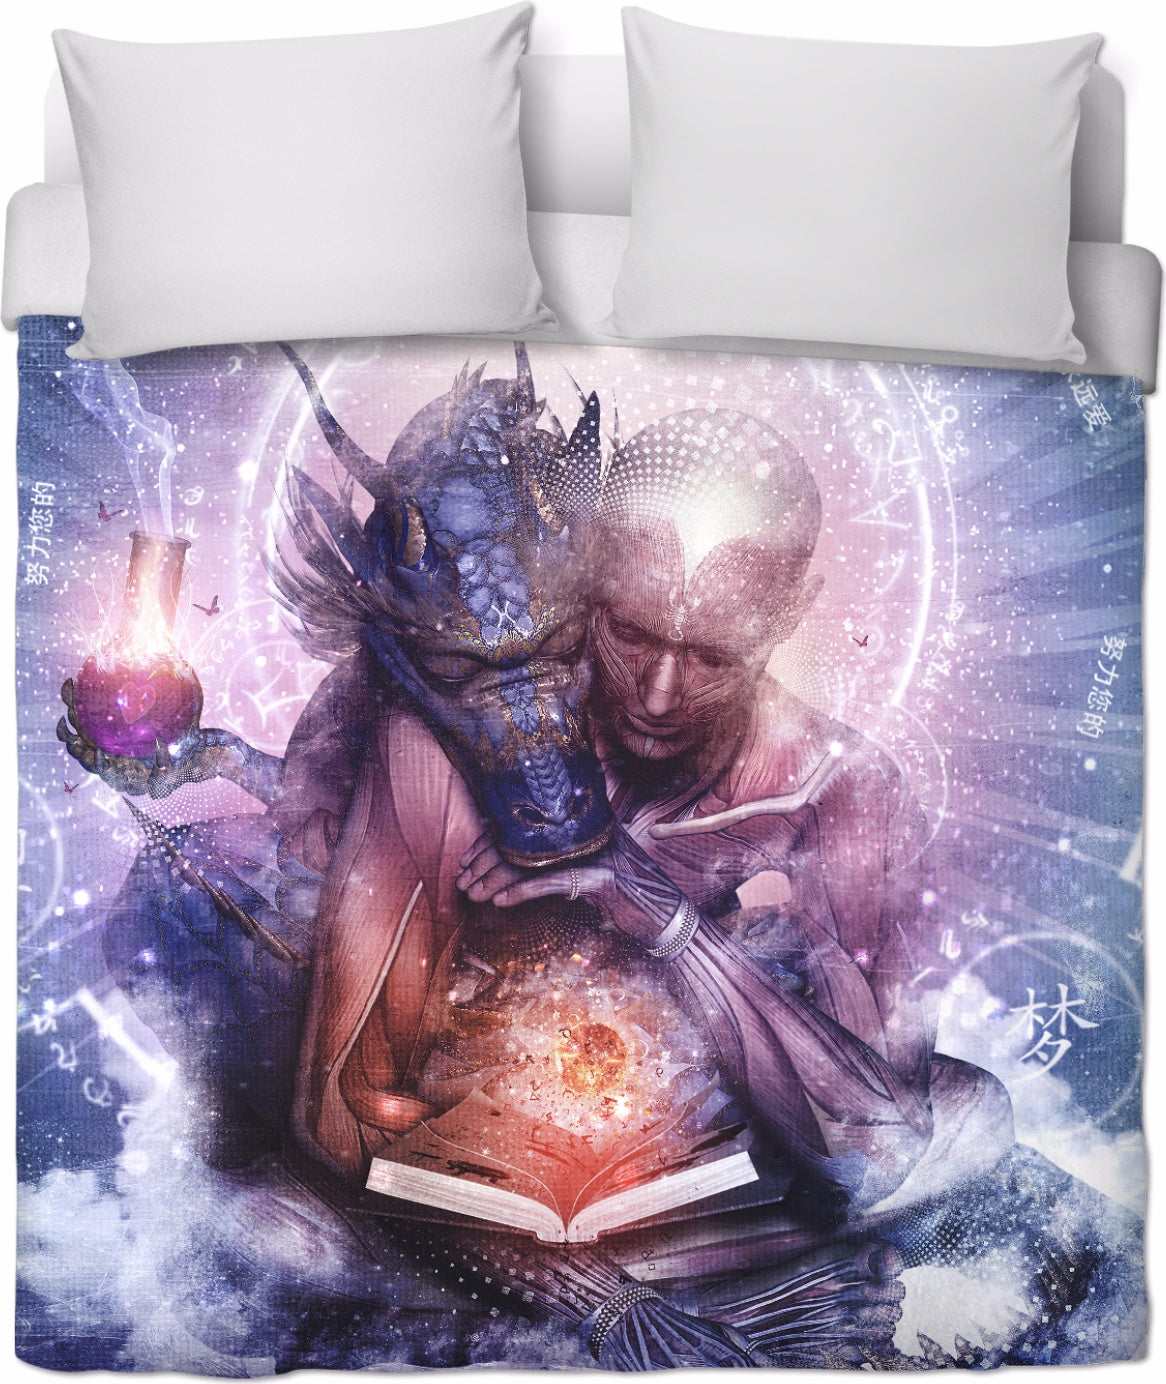 Perhaps The Dreams Are of Soulmates  Duvet Cover- Duvet Bed Cover